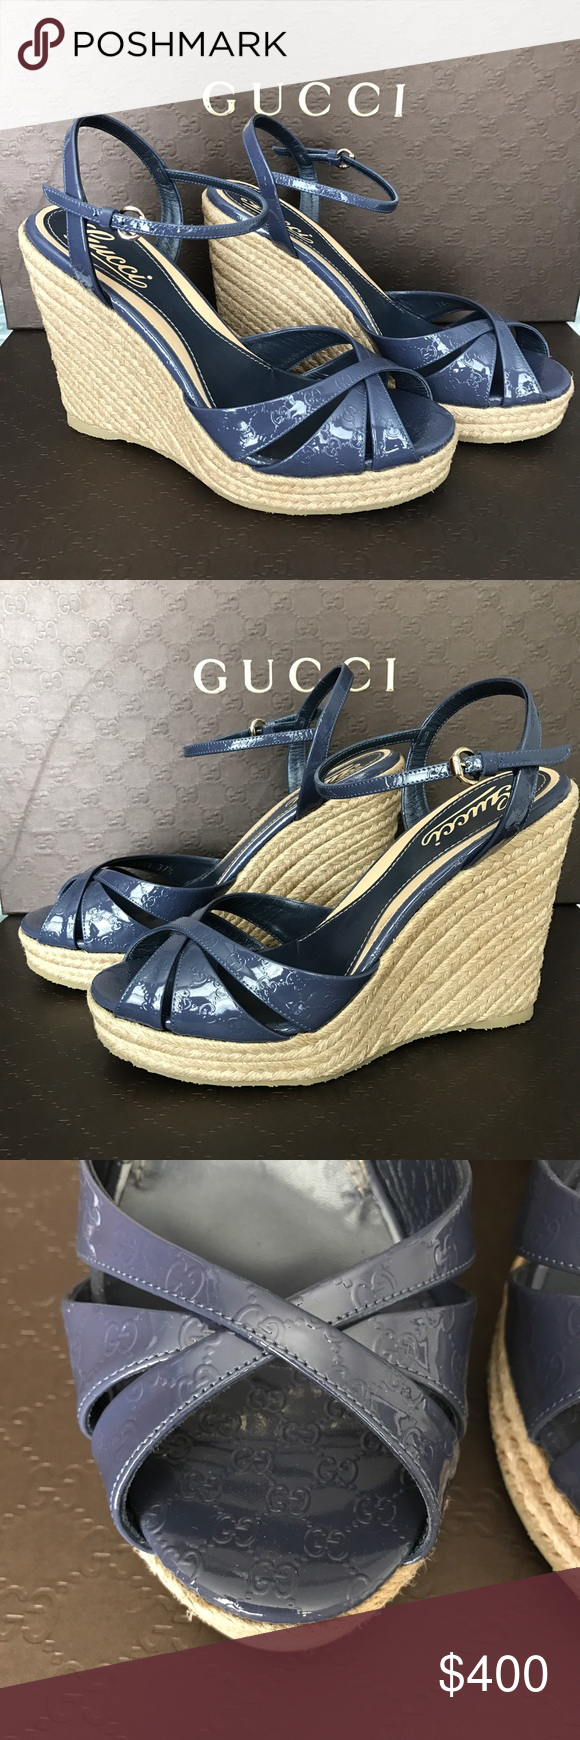 9737c7294ab6 New Gucci Penelope wedge New in box. Women s GUCCI Penelope Strappy Espadrille  Wedge Sandal GG MICROGUCCISSIMA LOGO WEDGES. Patent Leather. color  Uniform  ...